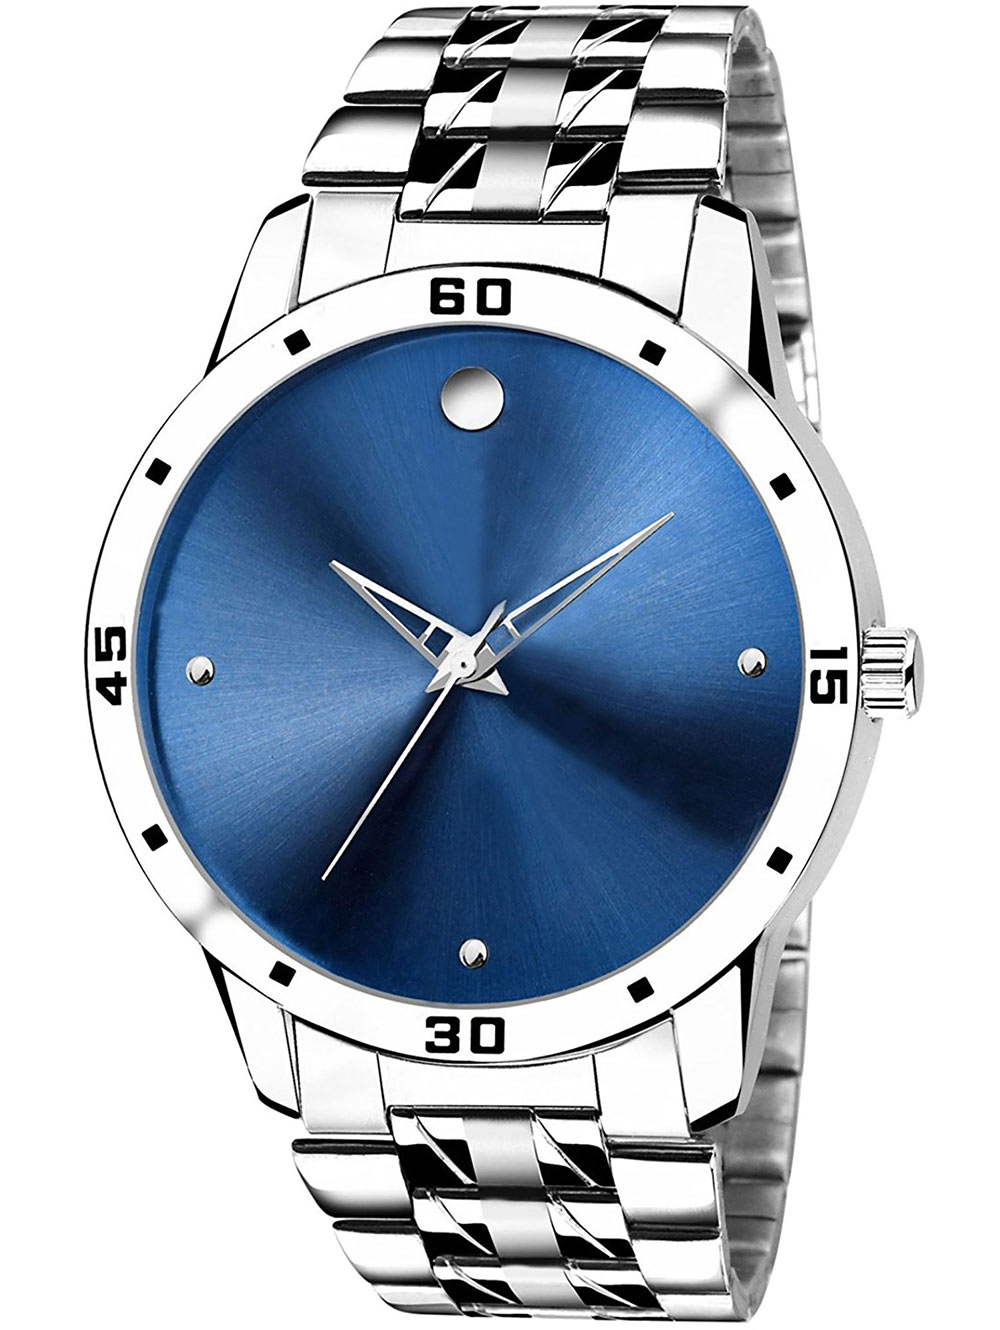 FX467 Silver Band Blue Dial Analogue Mens Watch